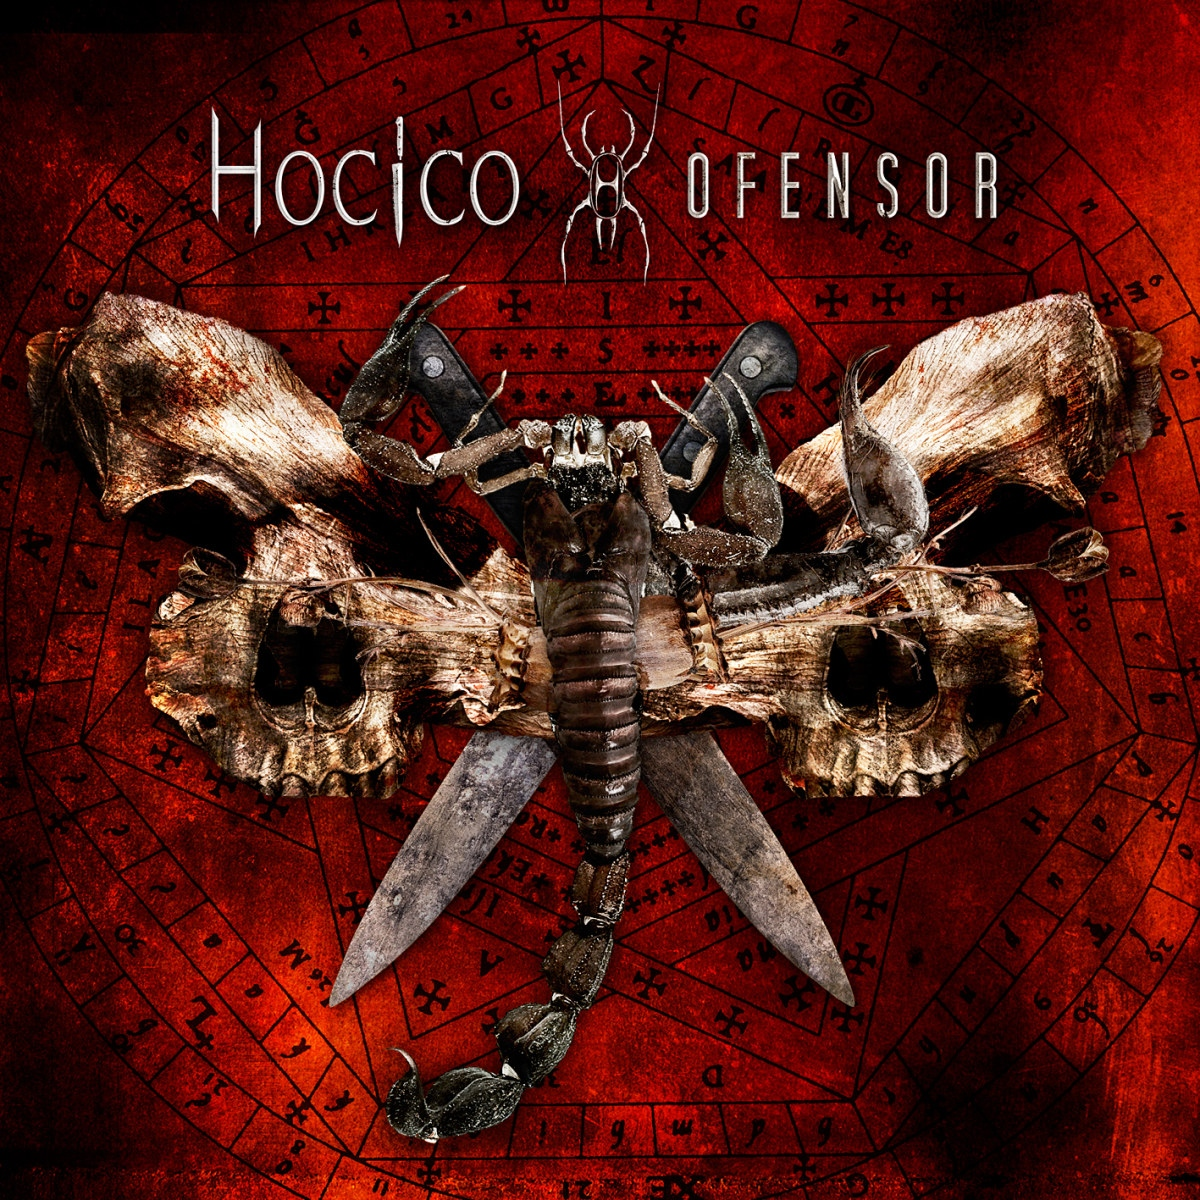 HOCICO Ofensor (Deluxe Edition) 2CD Digipack 2015 (VÖ 27.11)